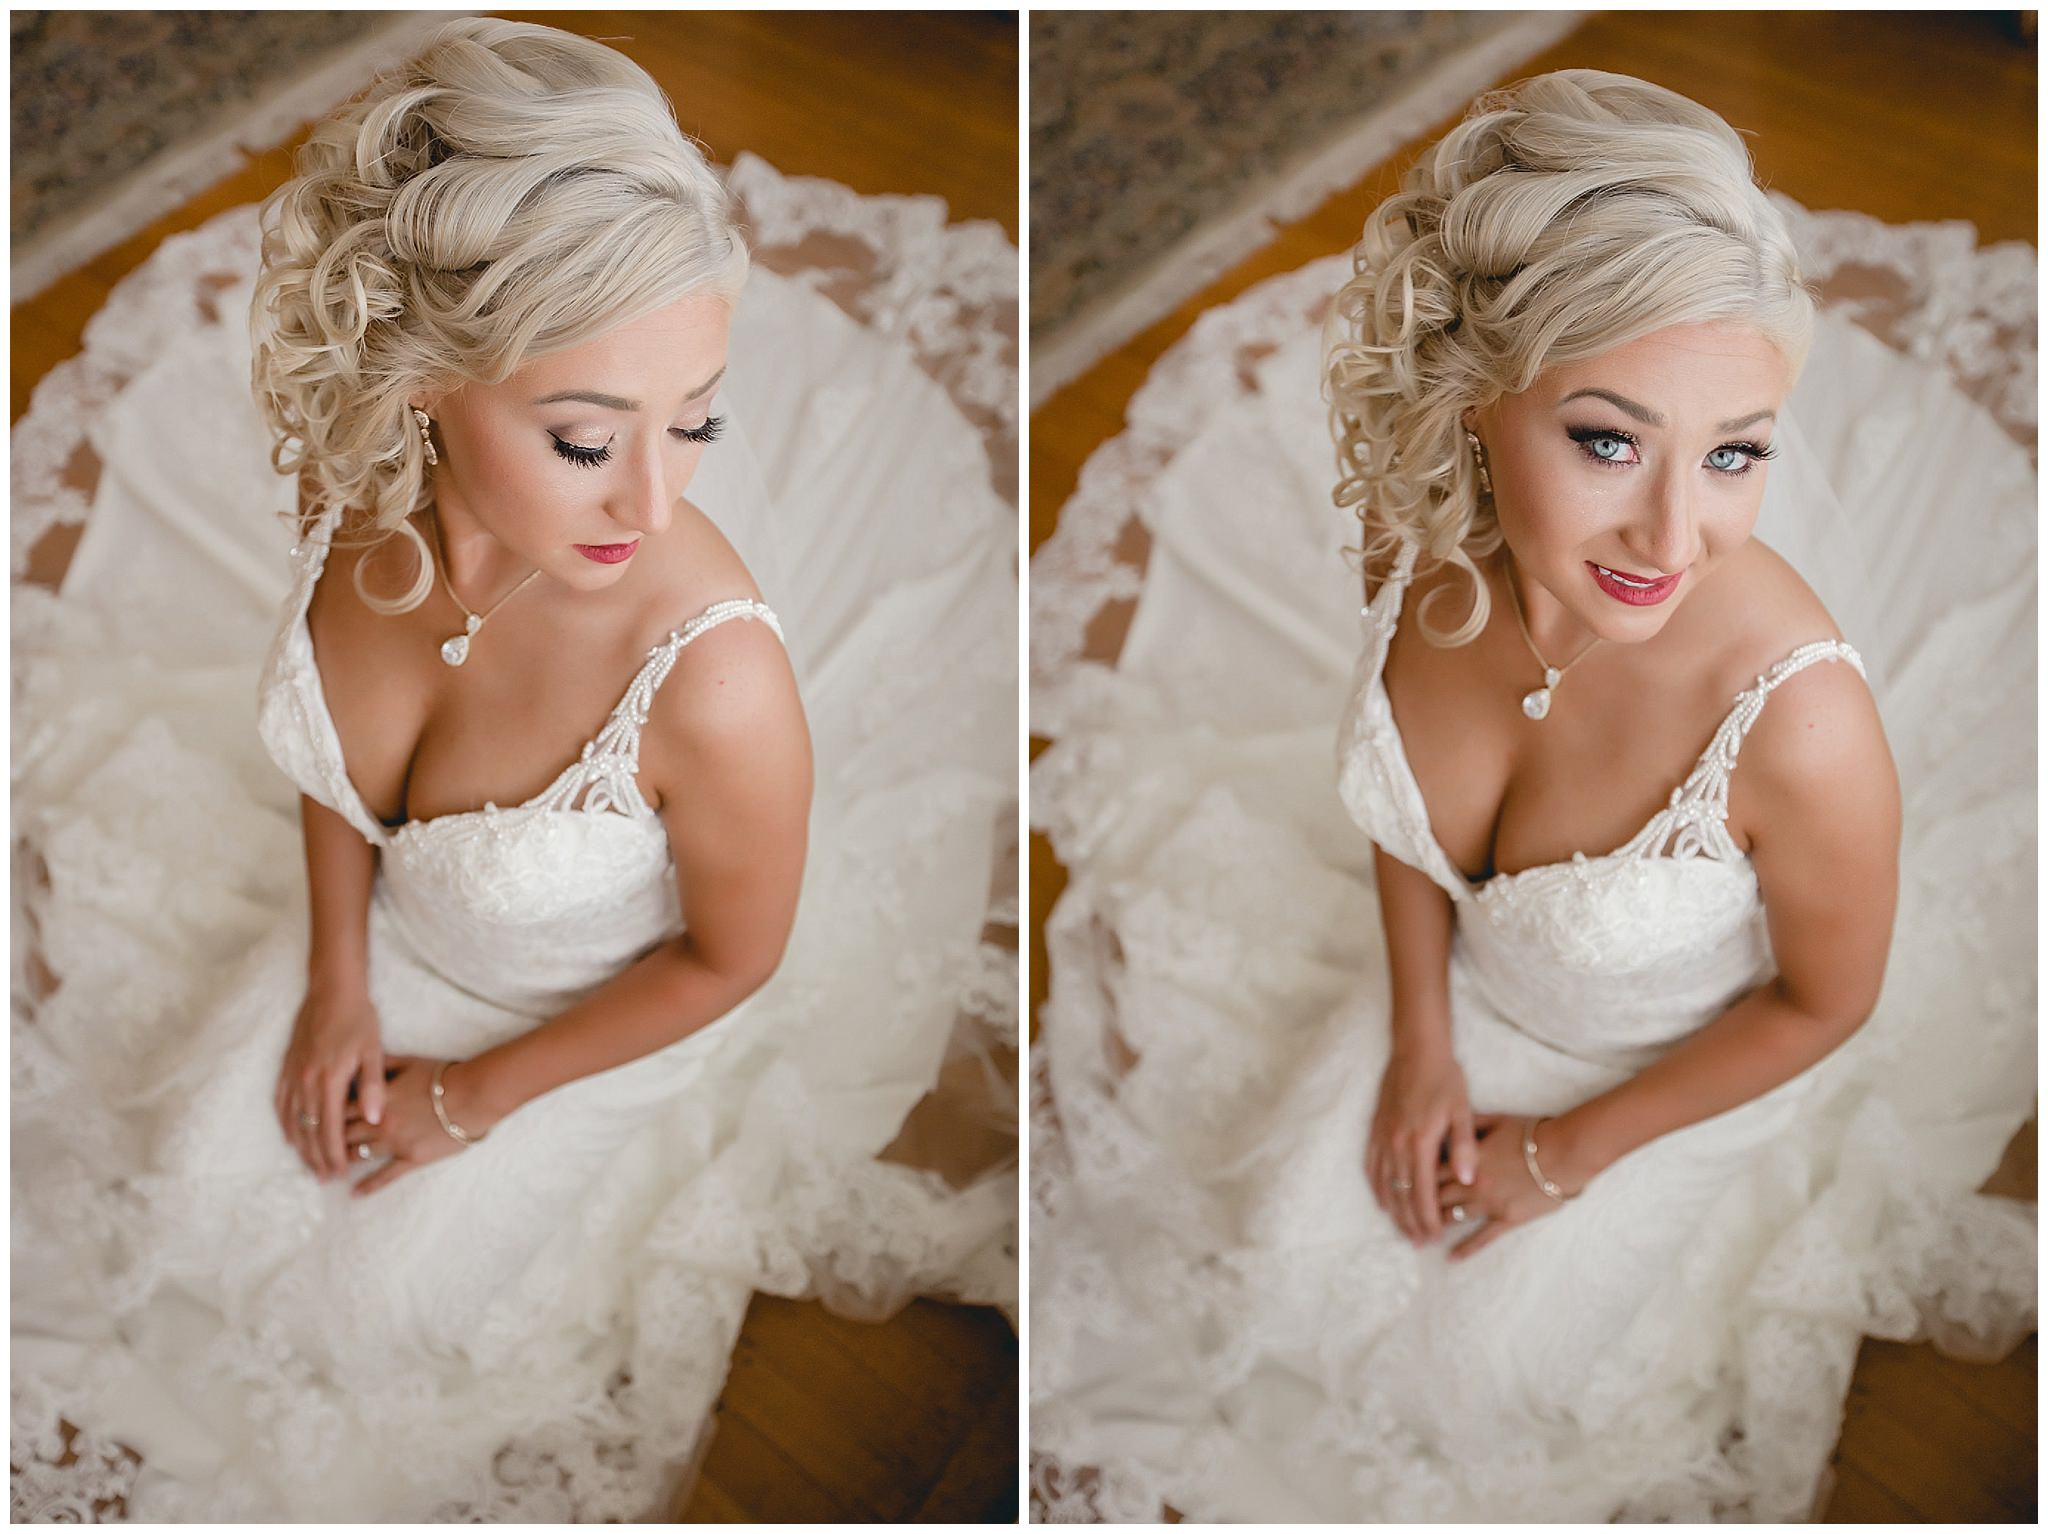 Bridal portrait by window light at Linden Hall